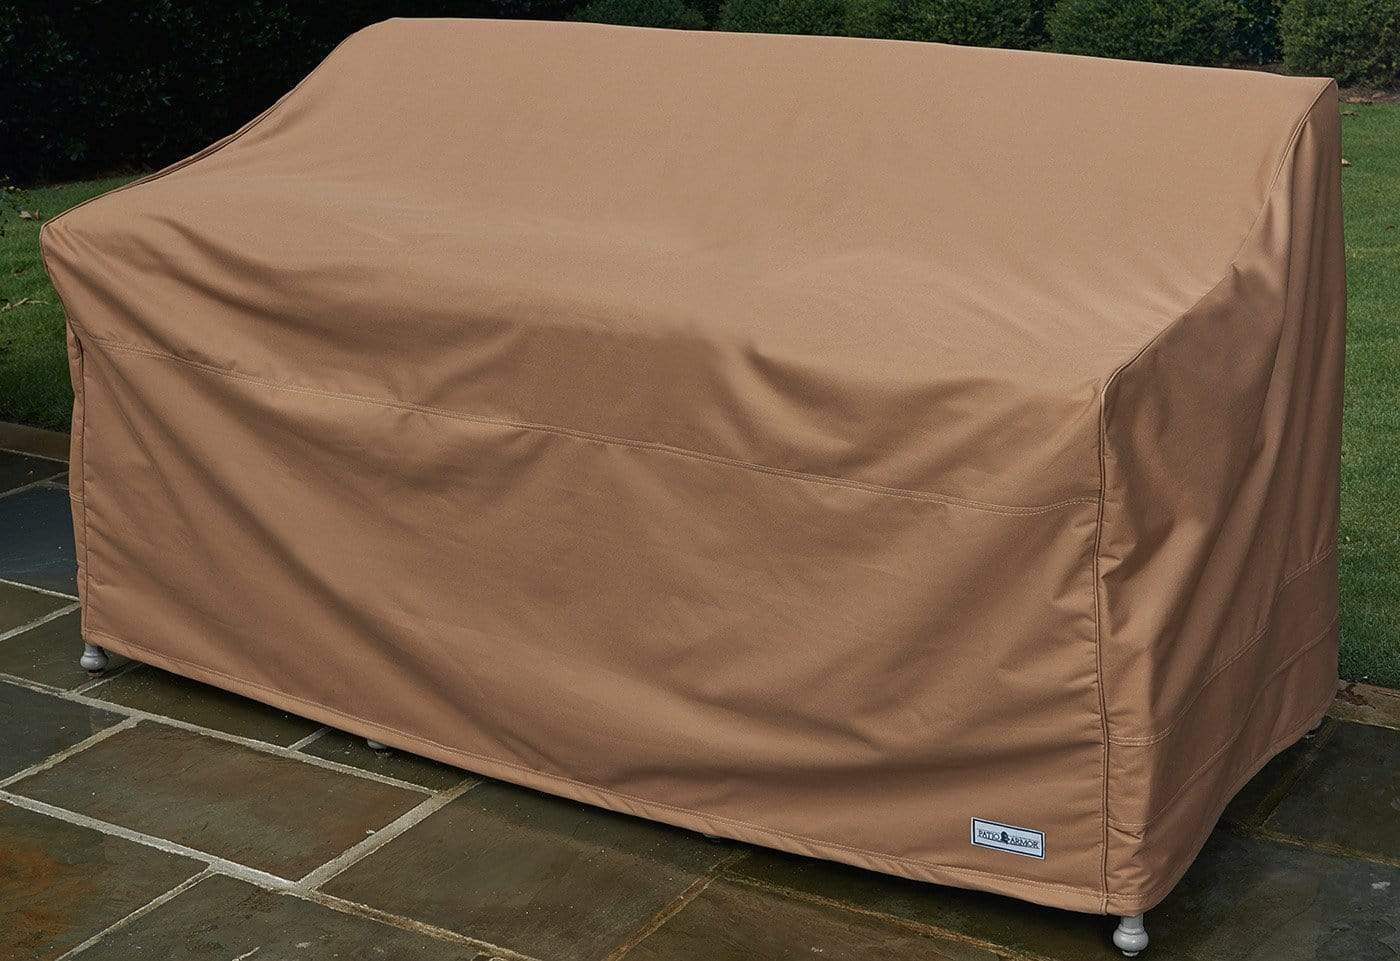 Patio Armor Loveseat Bench Outdoor Furniture Cover - Taupe / Taupe